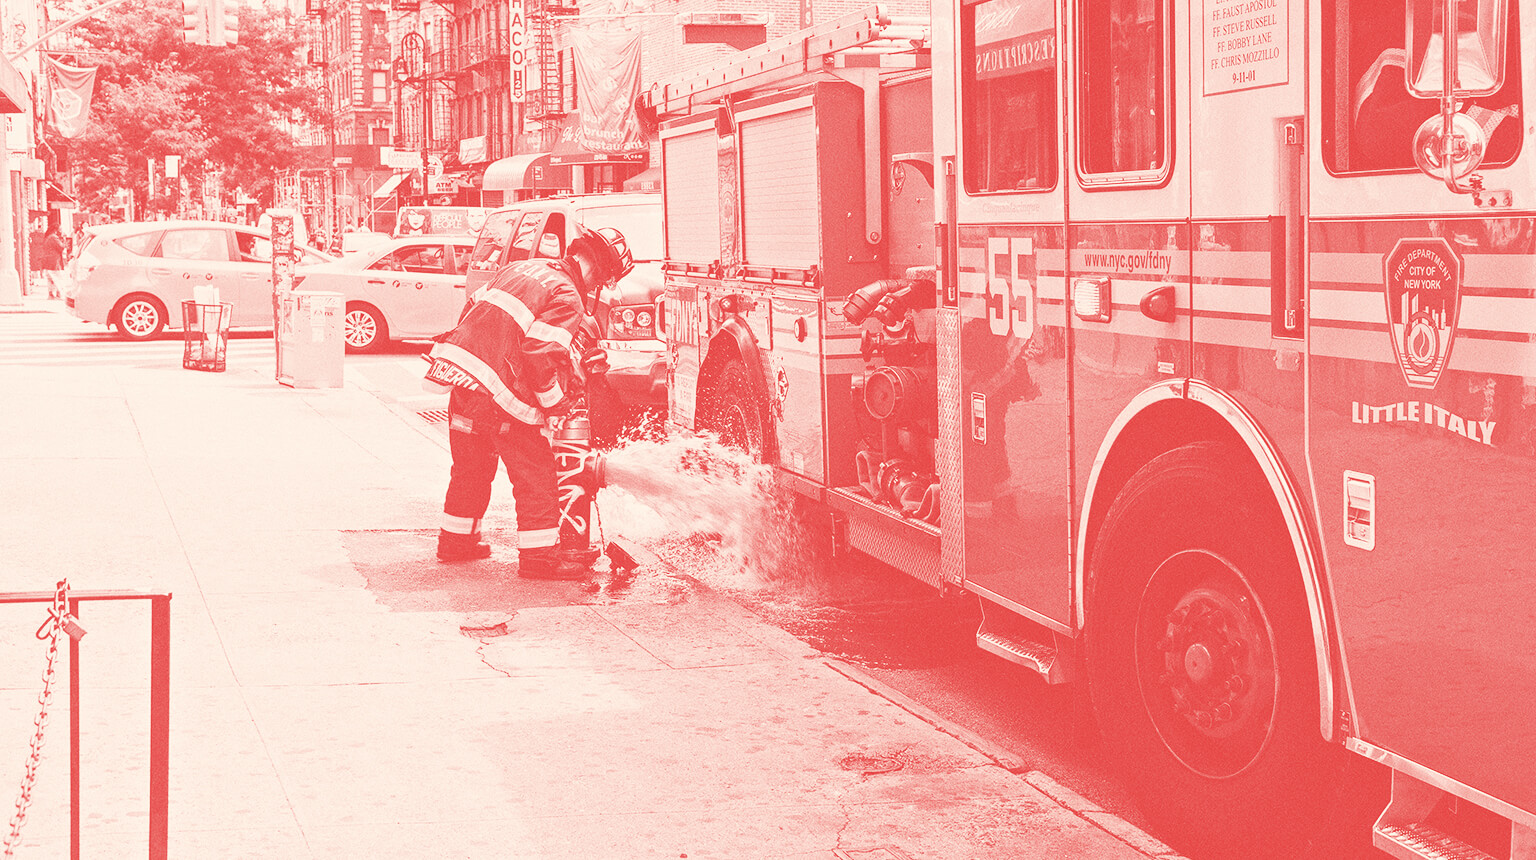 Firefighter standing next to a firetruck while monitoring an open fire hydrant.